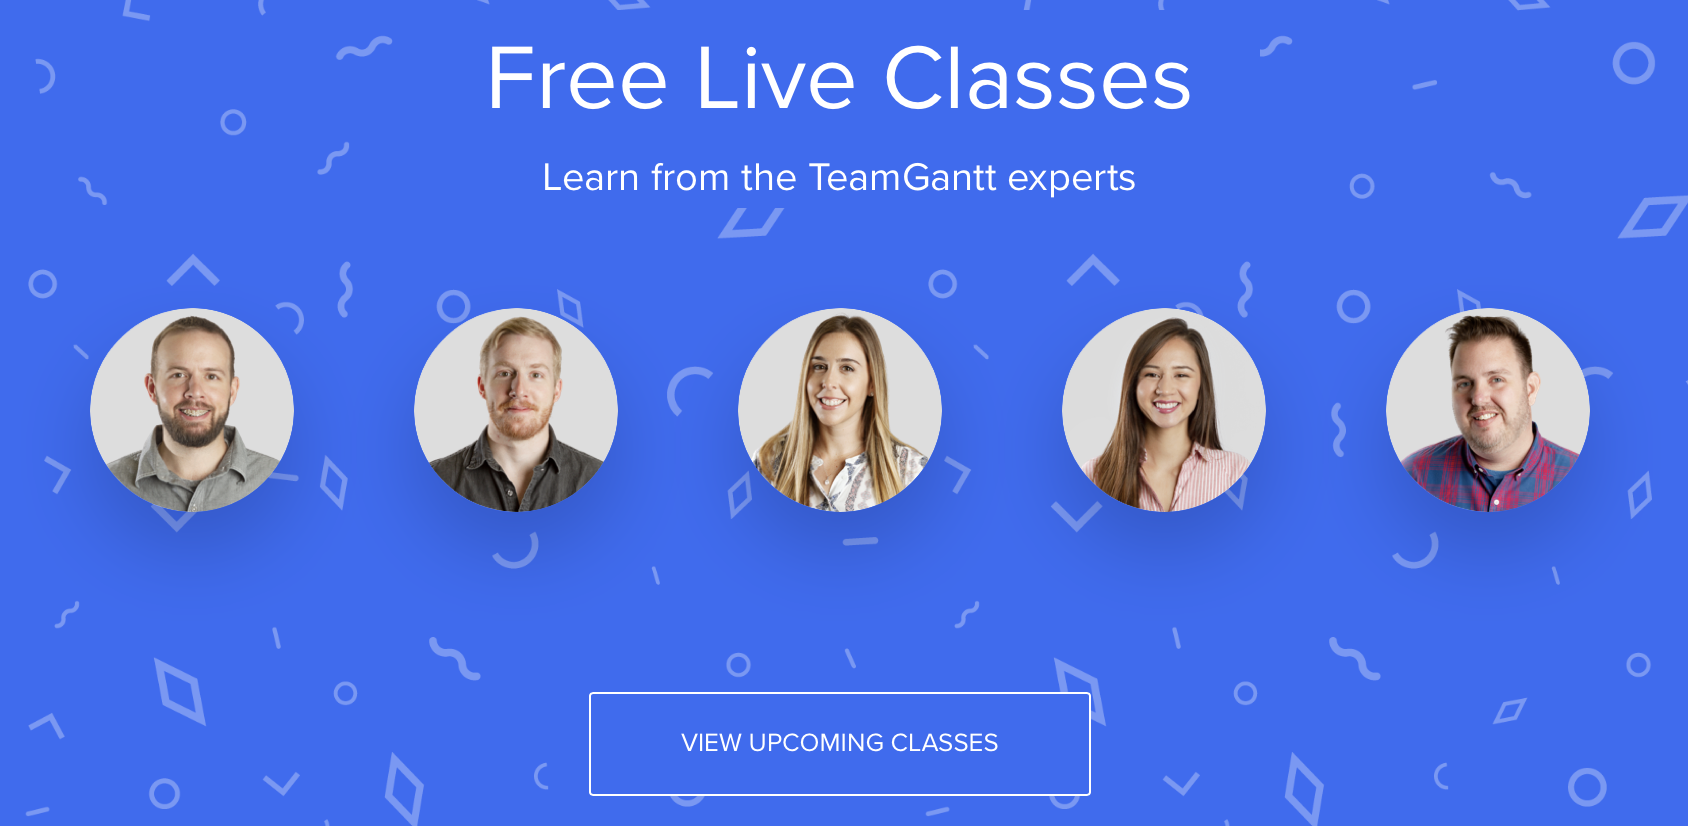 TeamGantt support register for classes screenshot